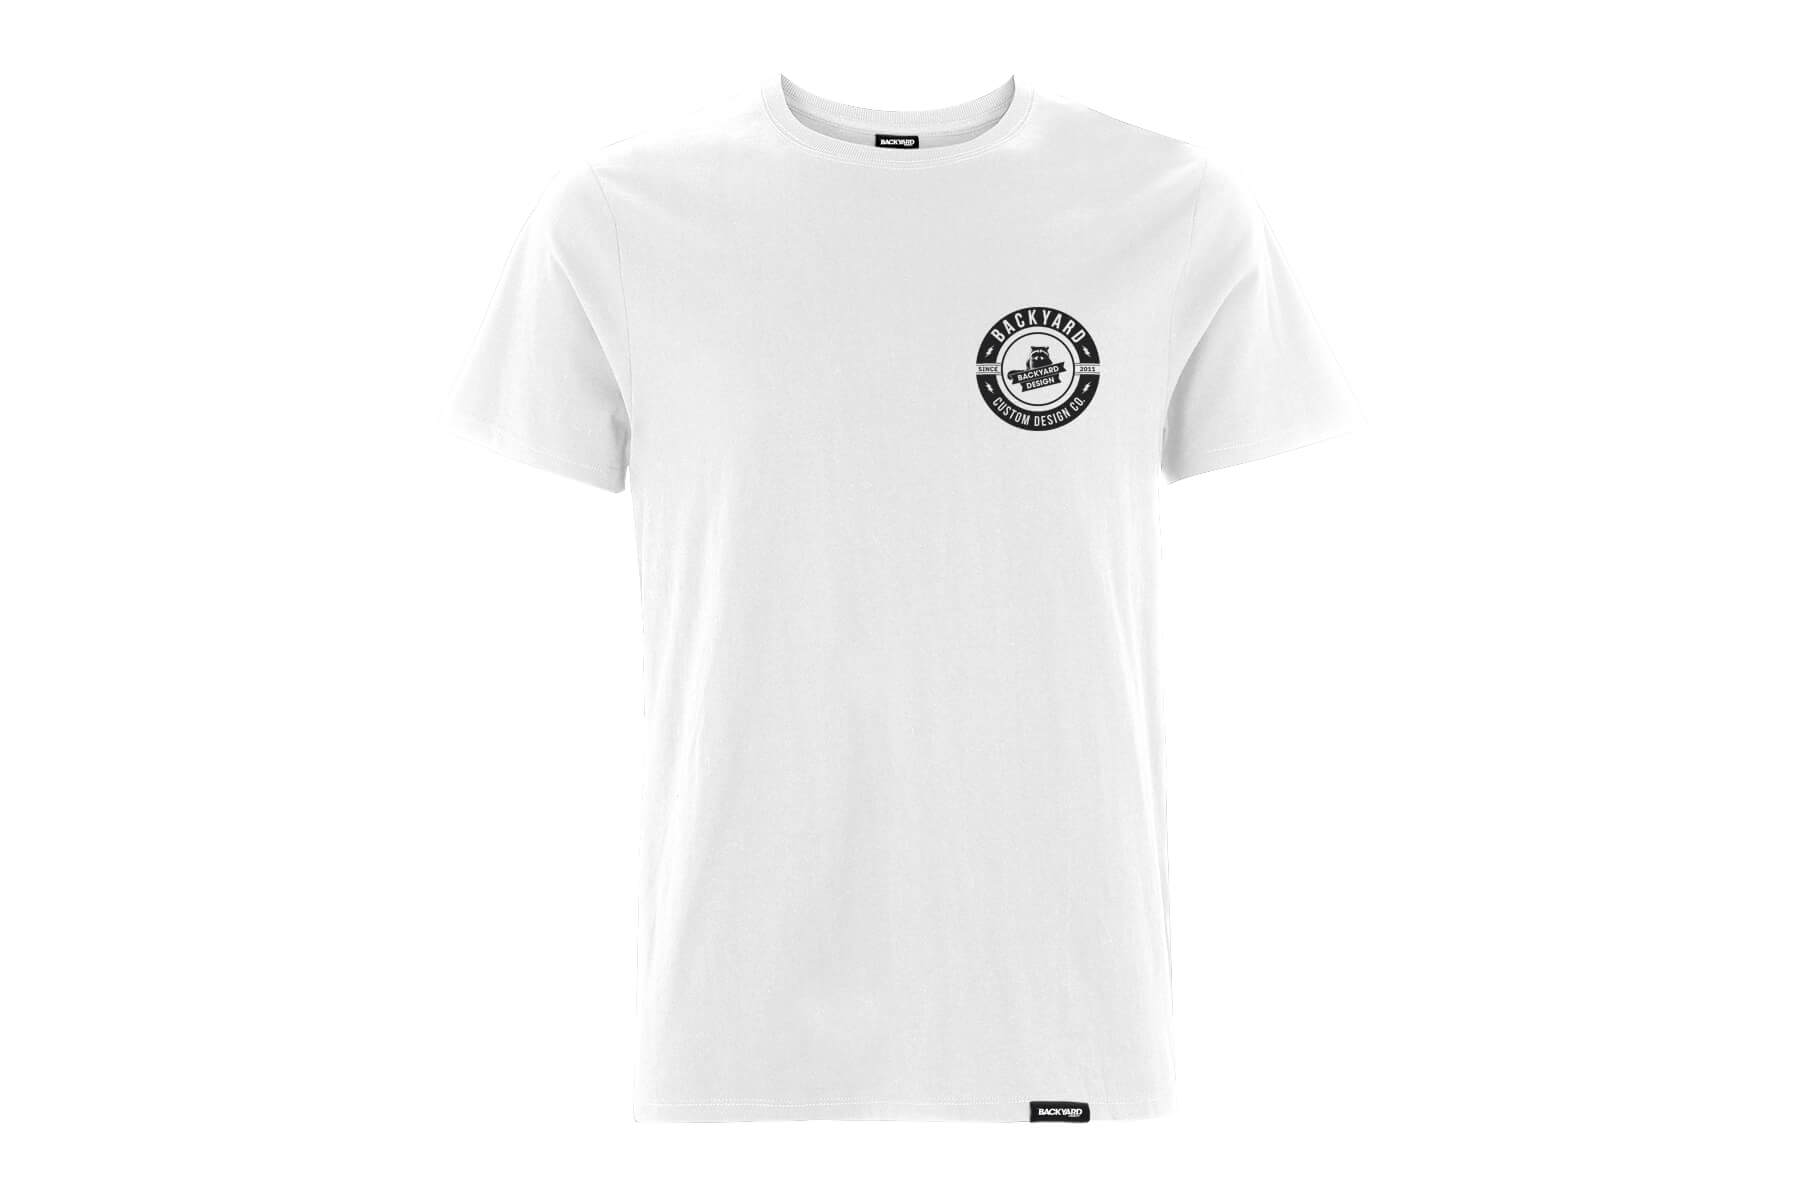 Backyard Design T Shirt Circle Logo Weiss White Back BYD Clothing Motocross MX Tee